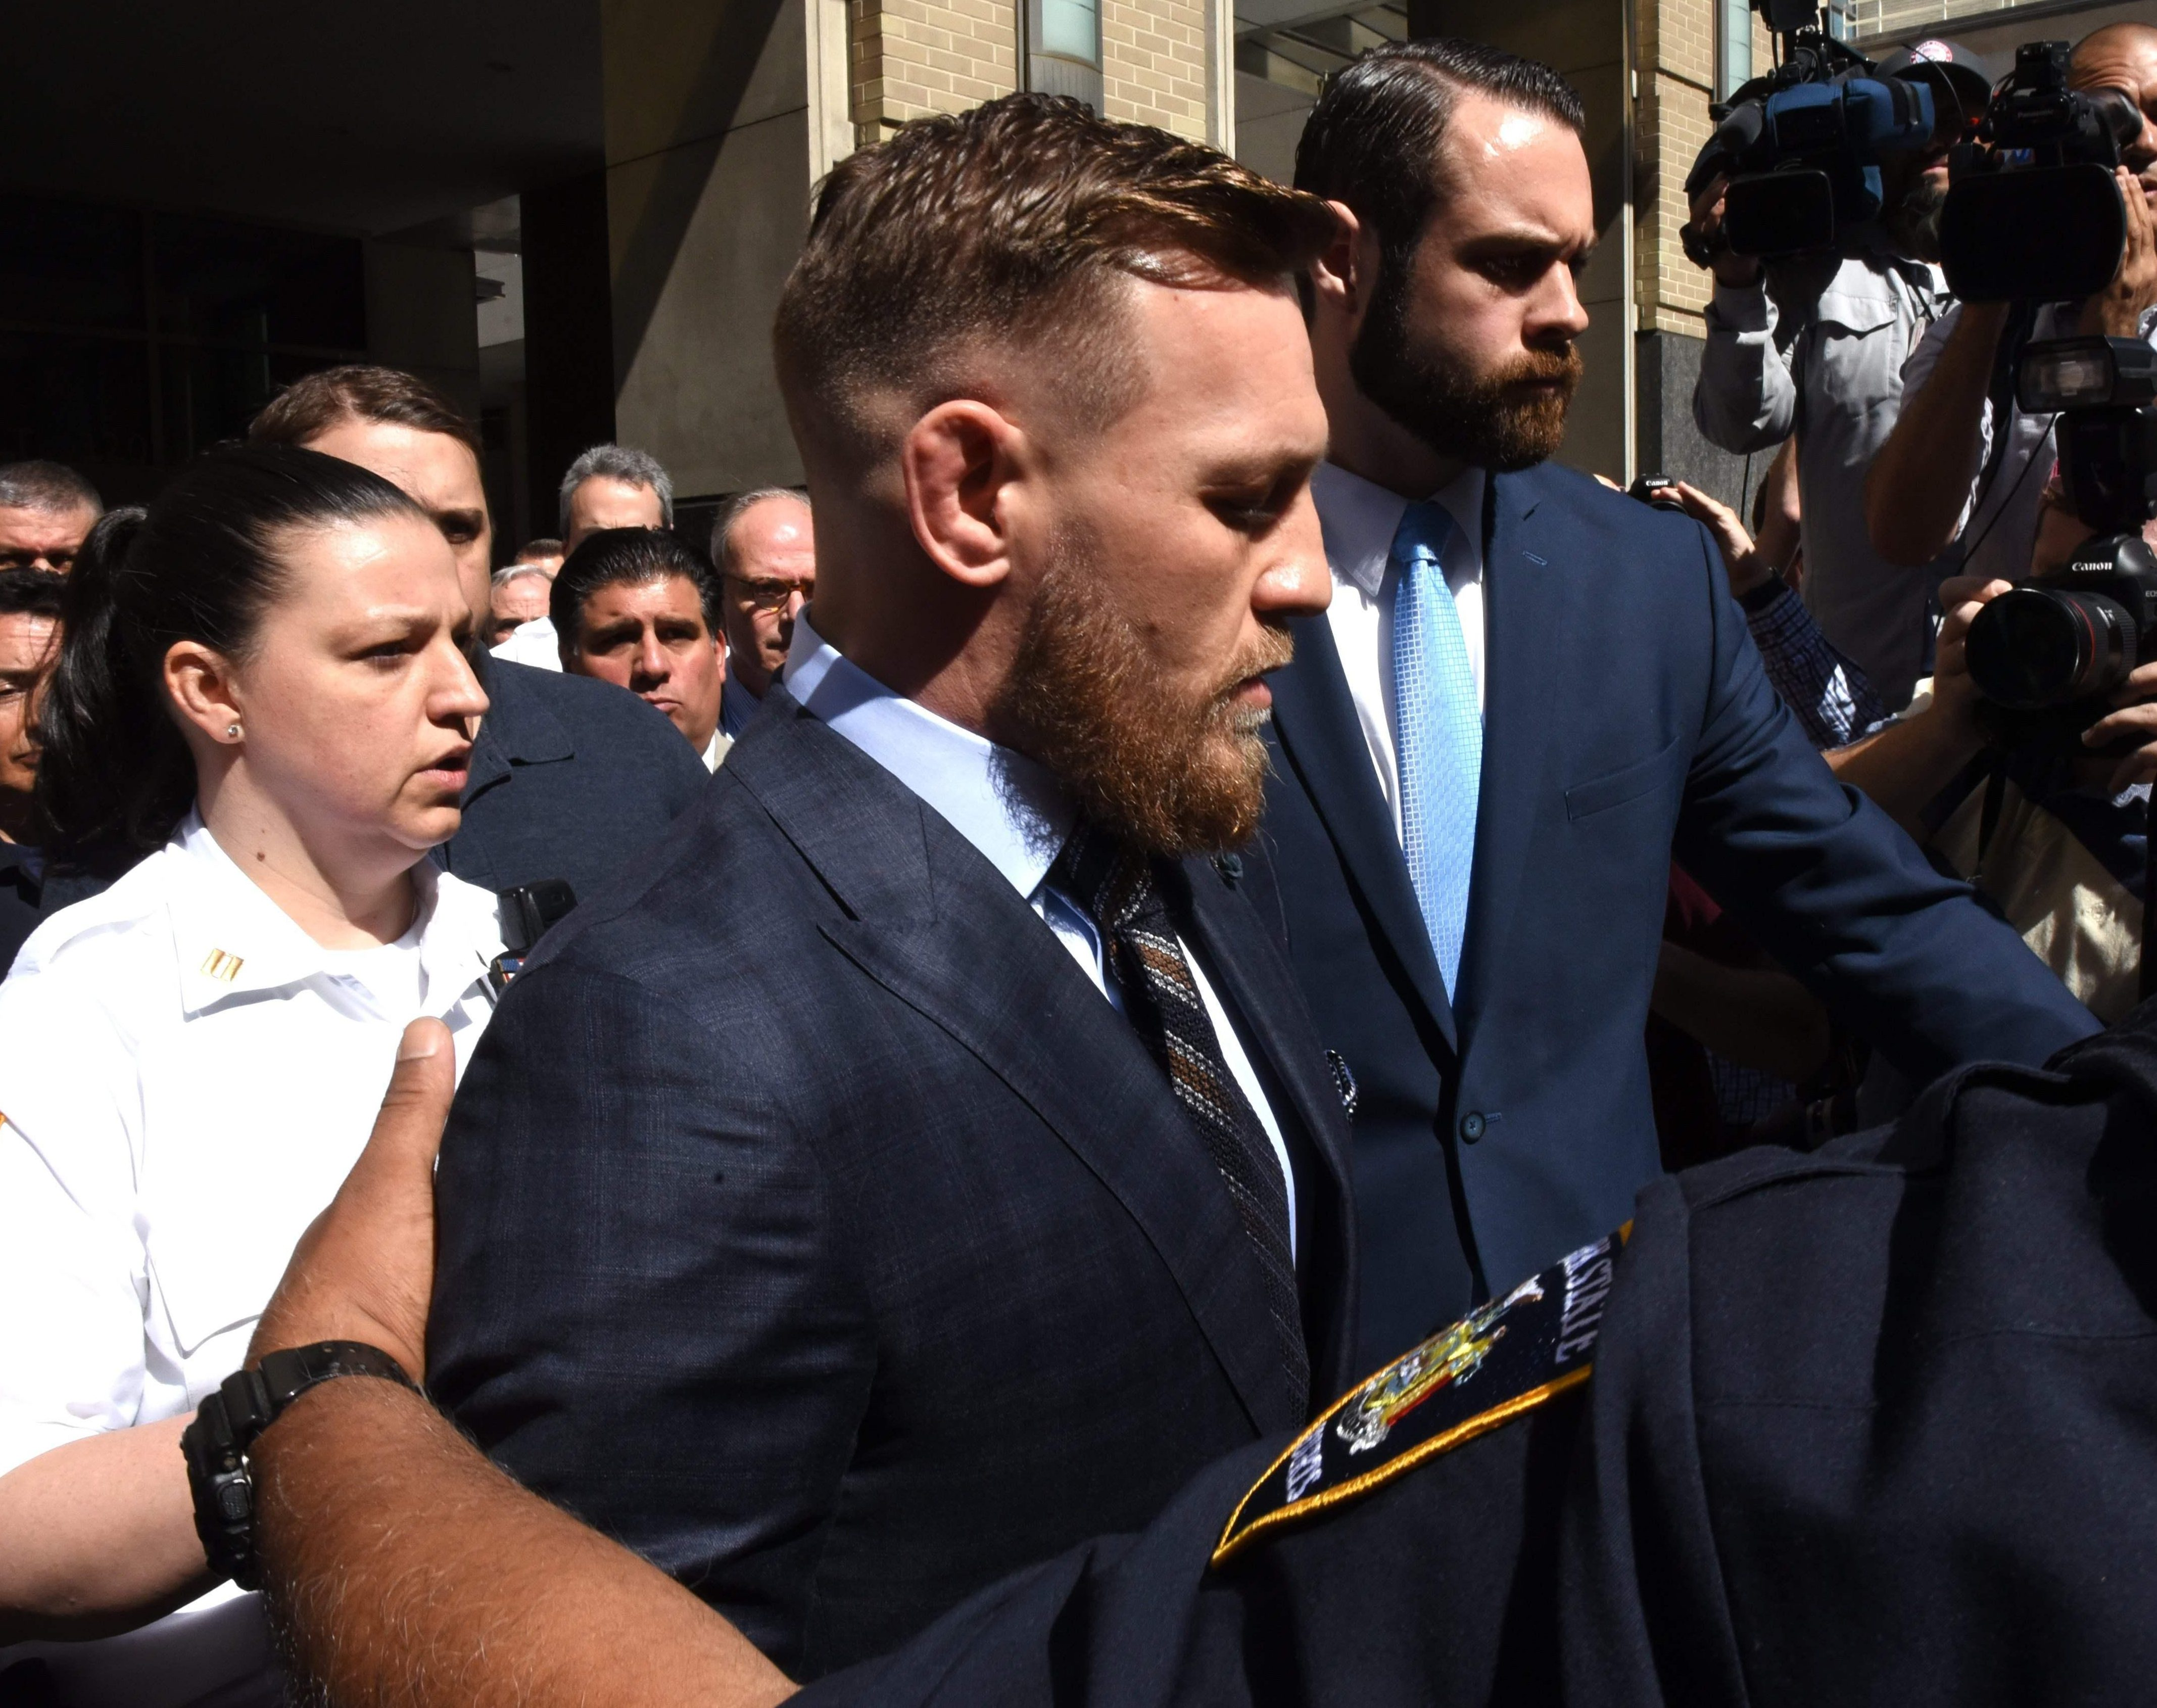 McGregor and co-accused Cian Cowley are due back in court on July 26